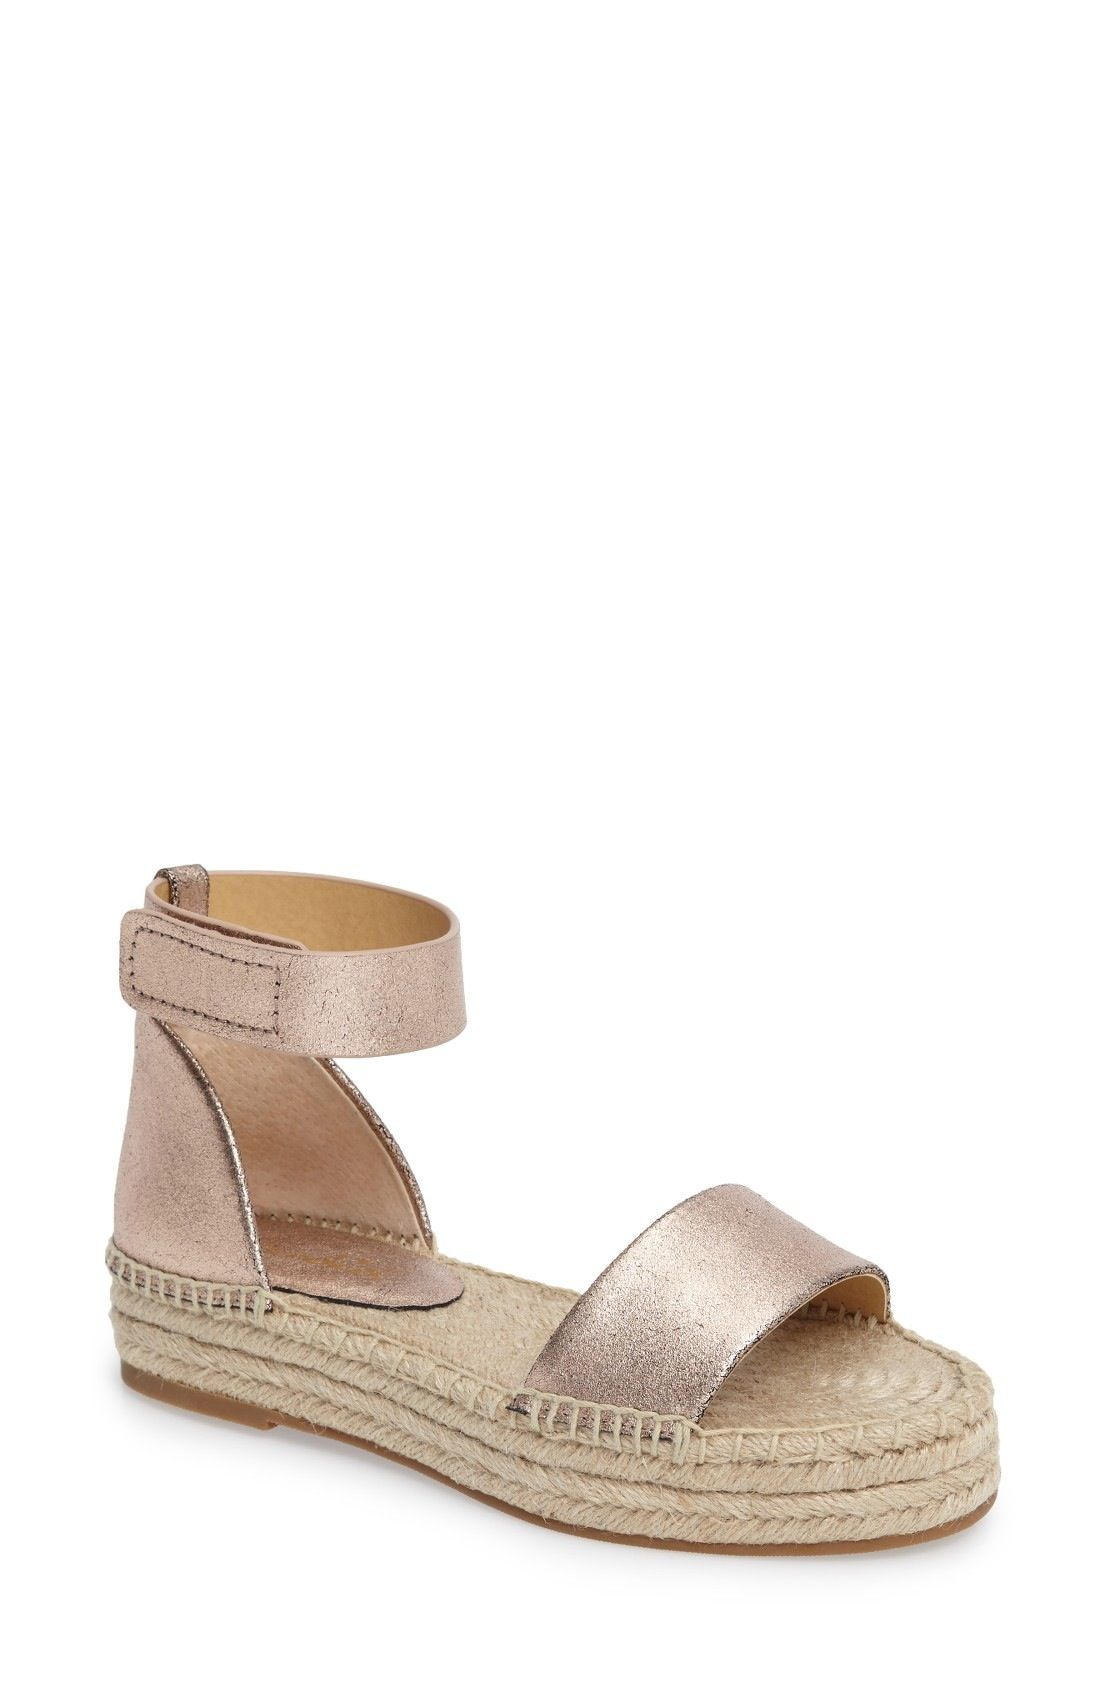 11ebe423420 Splendid Jensen Platform Espadrille Sandal (Women) available at  Nordstrom